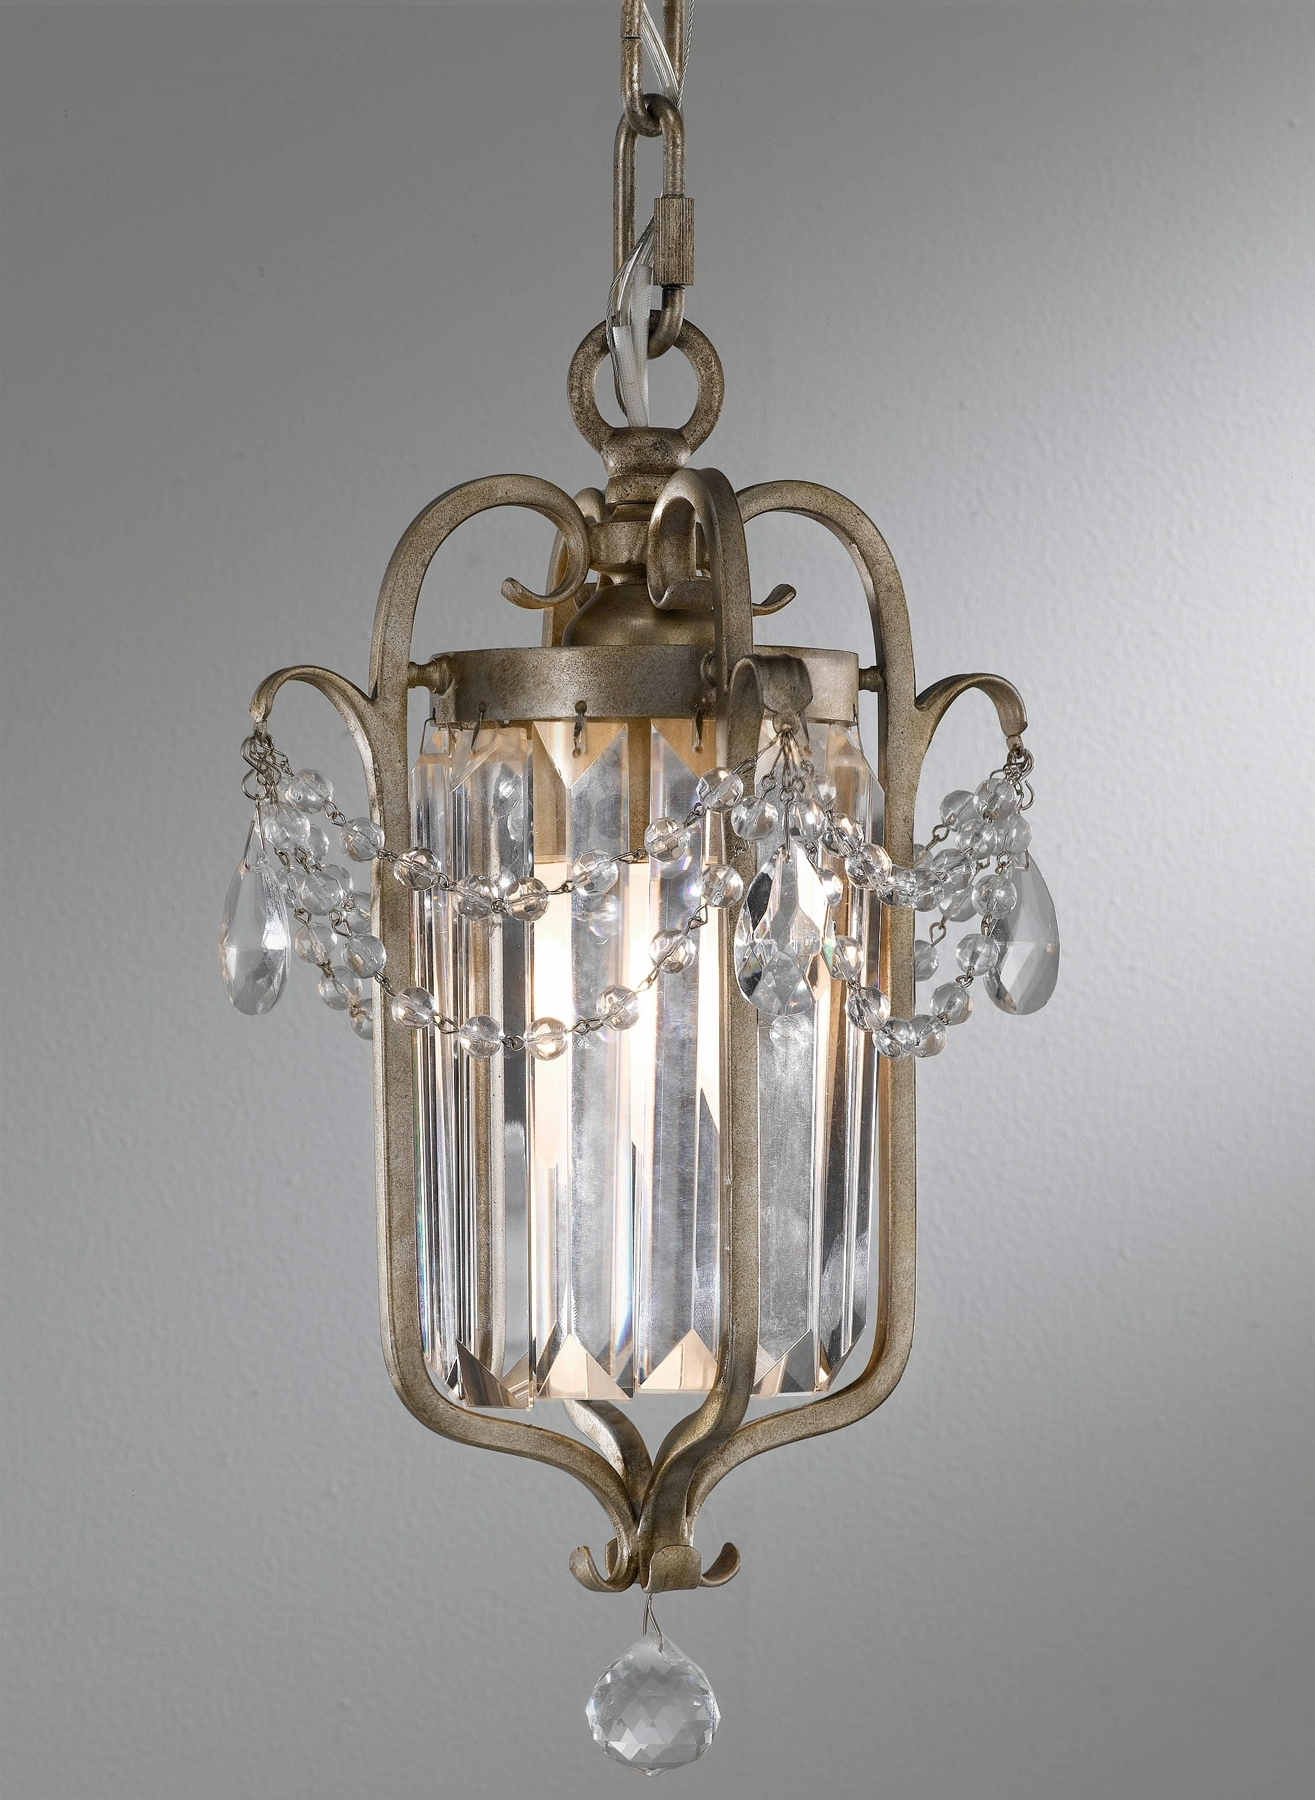 Preferred Feiss F2474/1Gs Crystal Gianna Mini Chandelier With Gianna Mini Chandeliers (View 2 of 20)